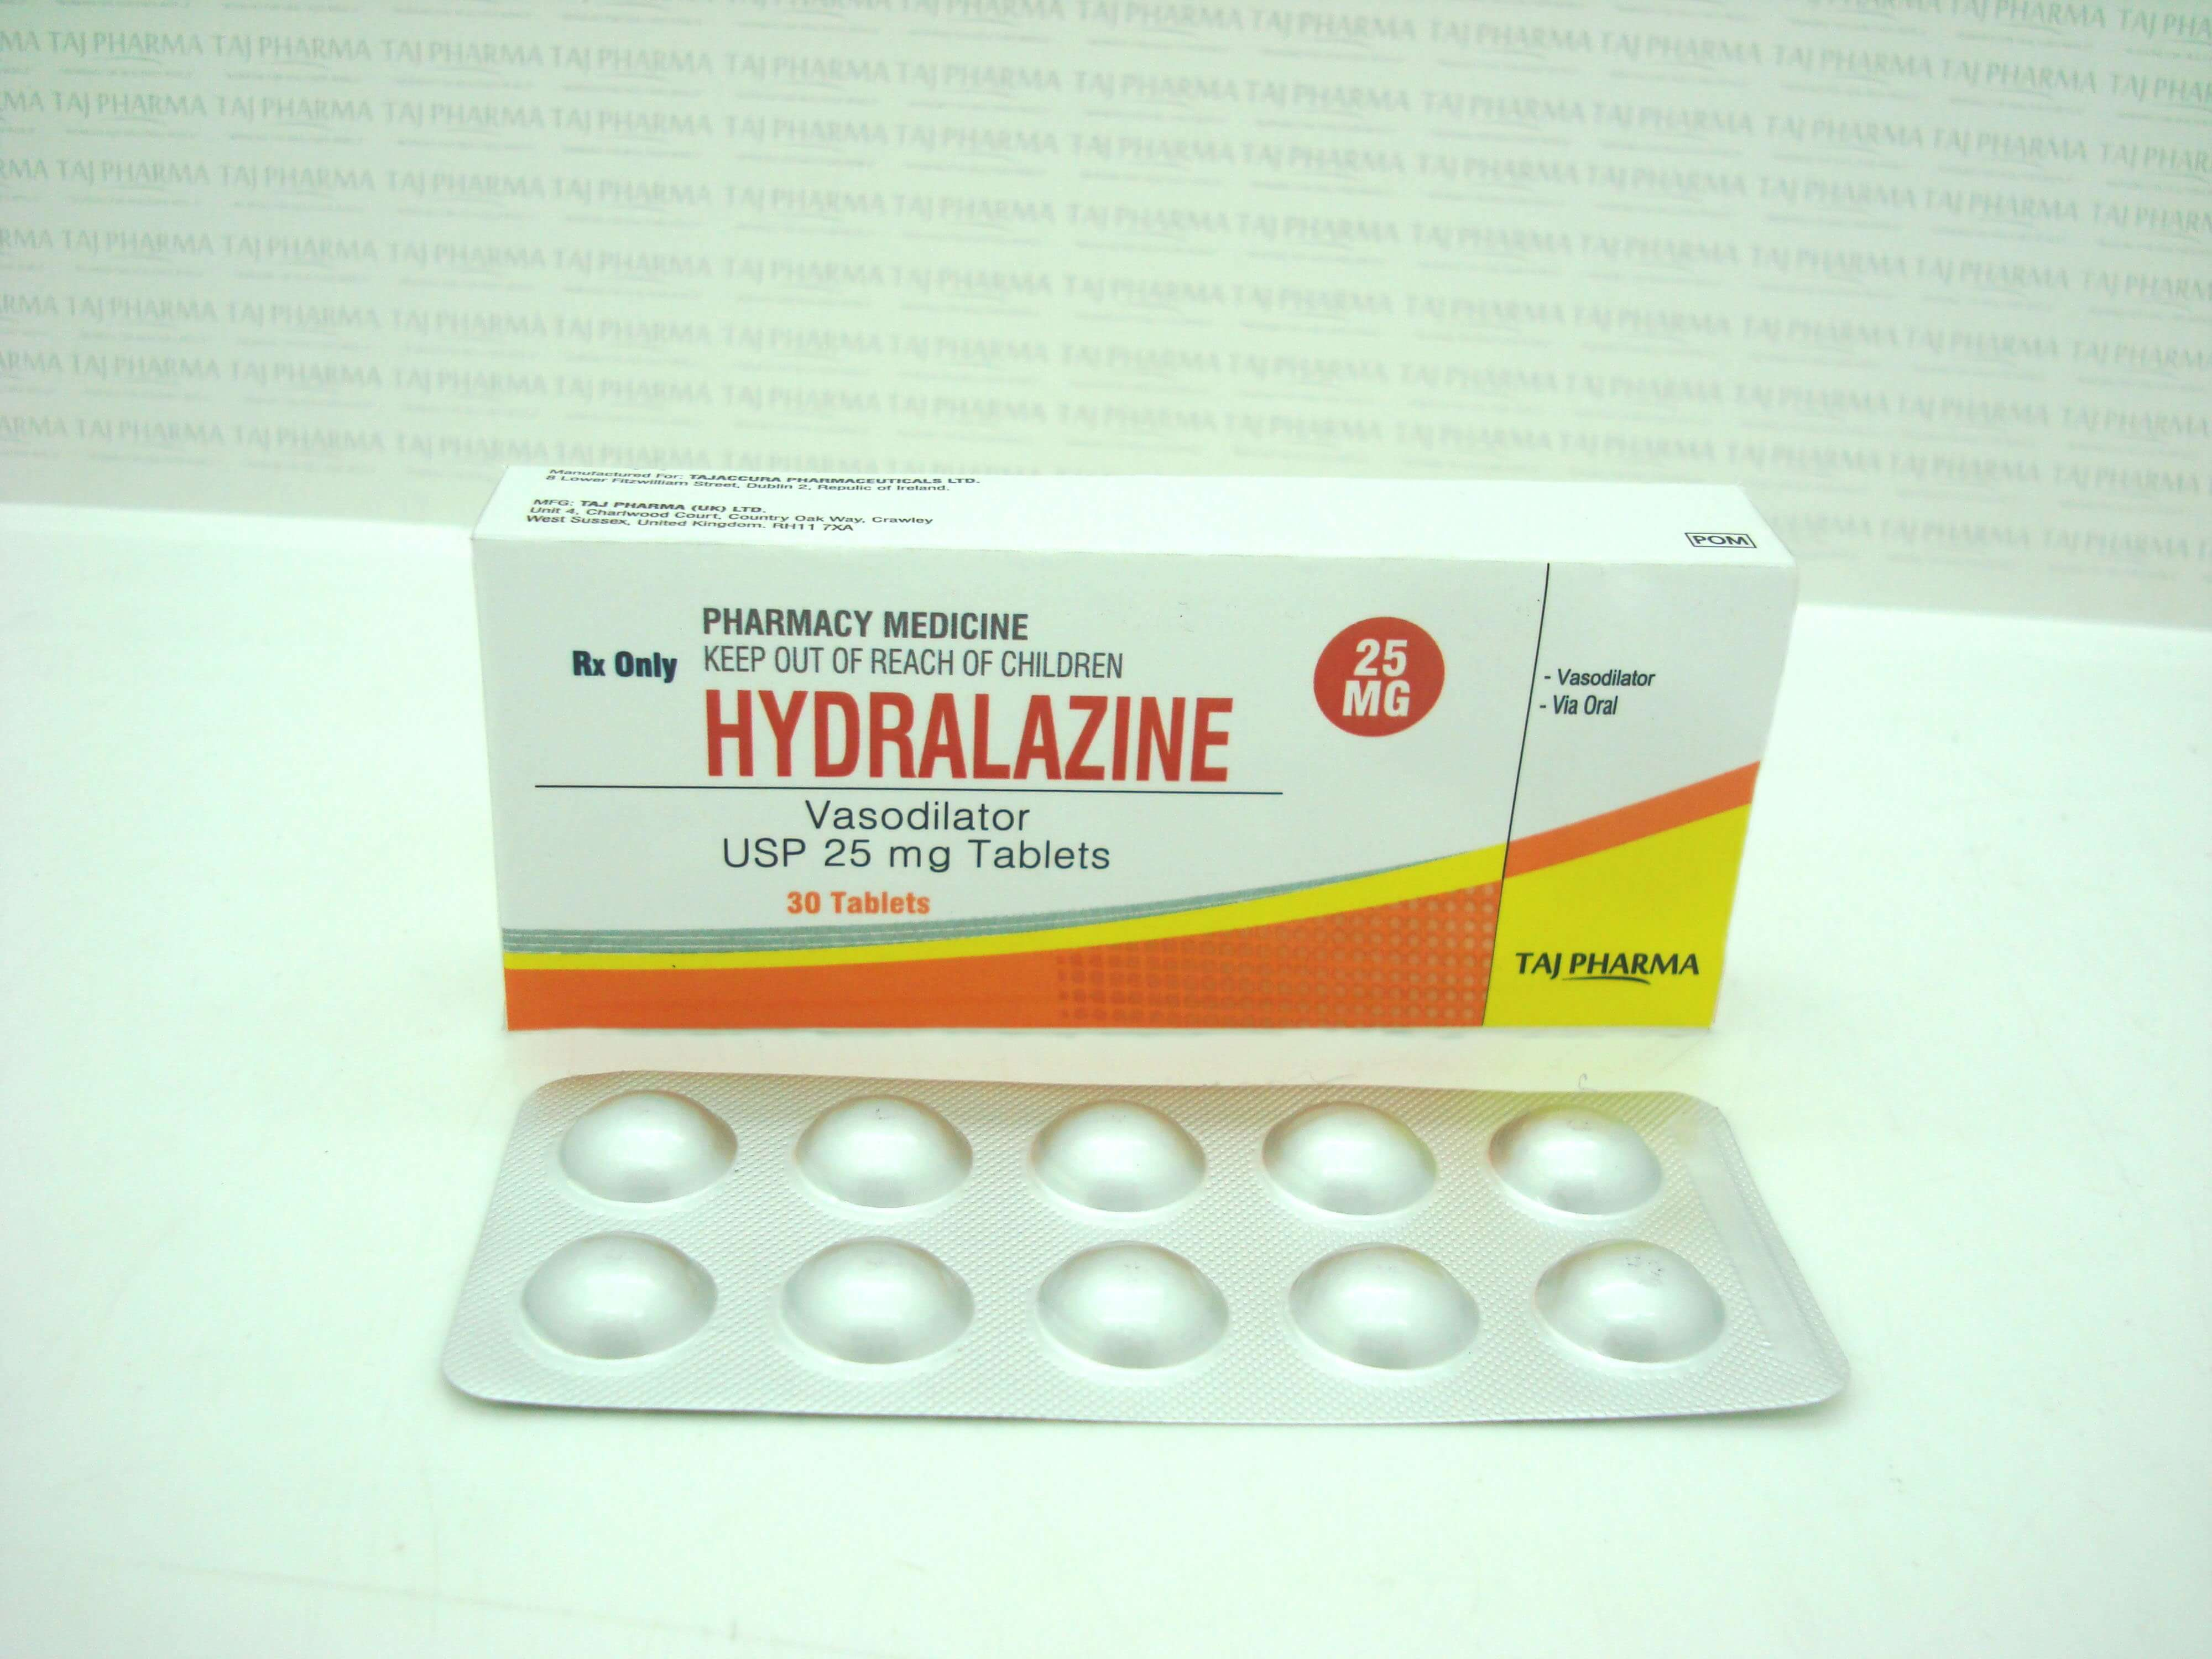 Hydralazine-related AAV Causes Advanced Kidney Disease in Some Patients, Study Finds